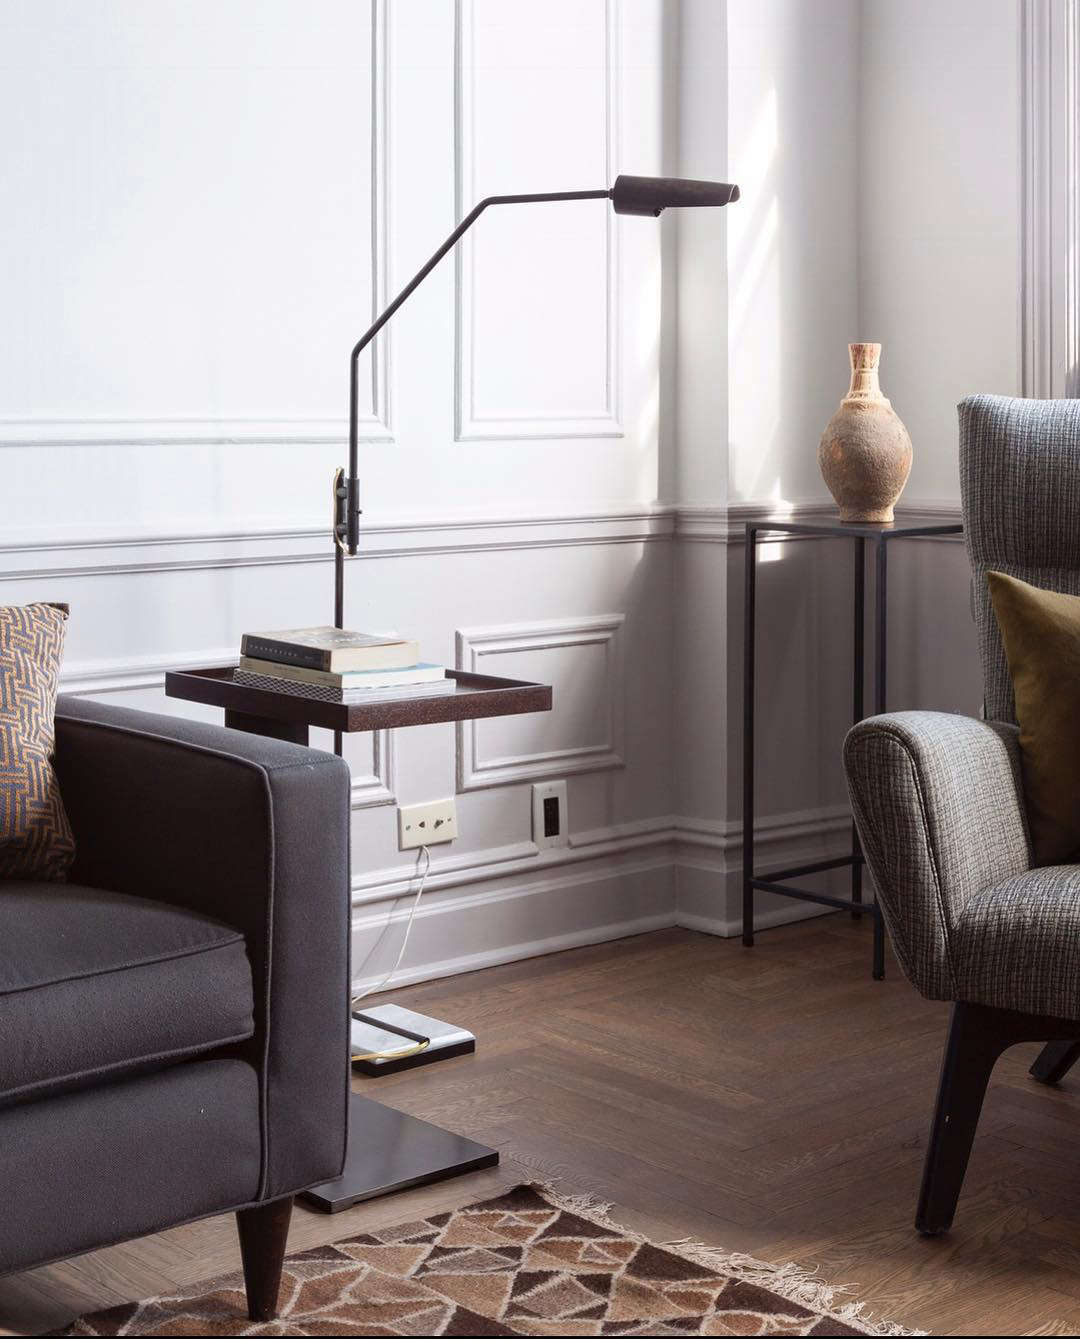 The Switch Floor Lamp by Lumifer by Javier Robles, as seen in a private home in New York.